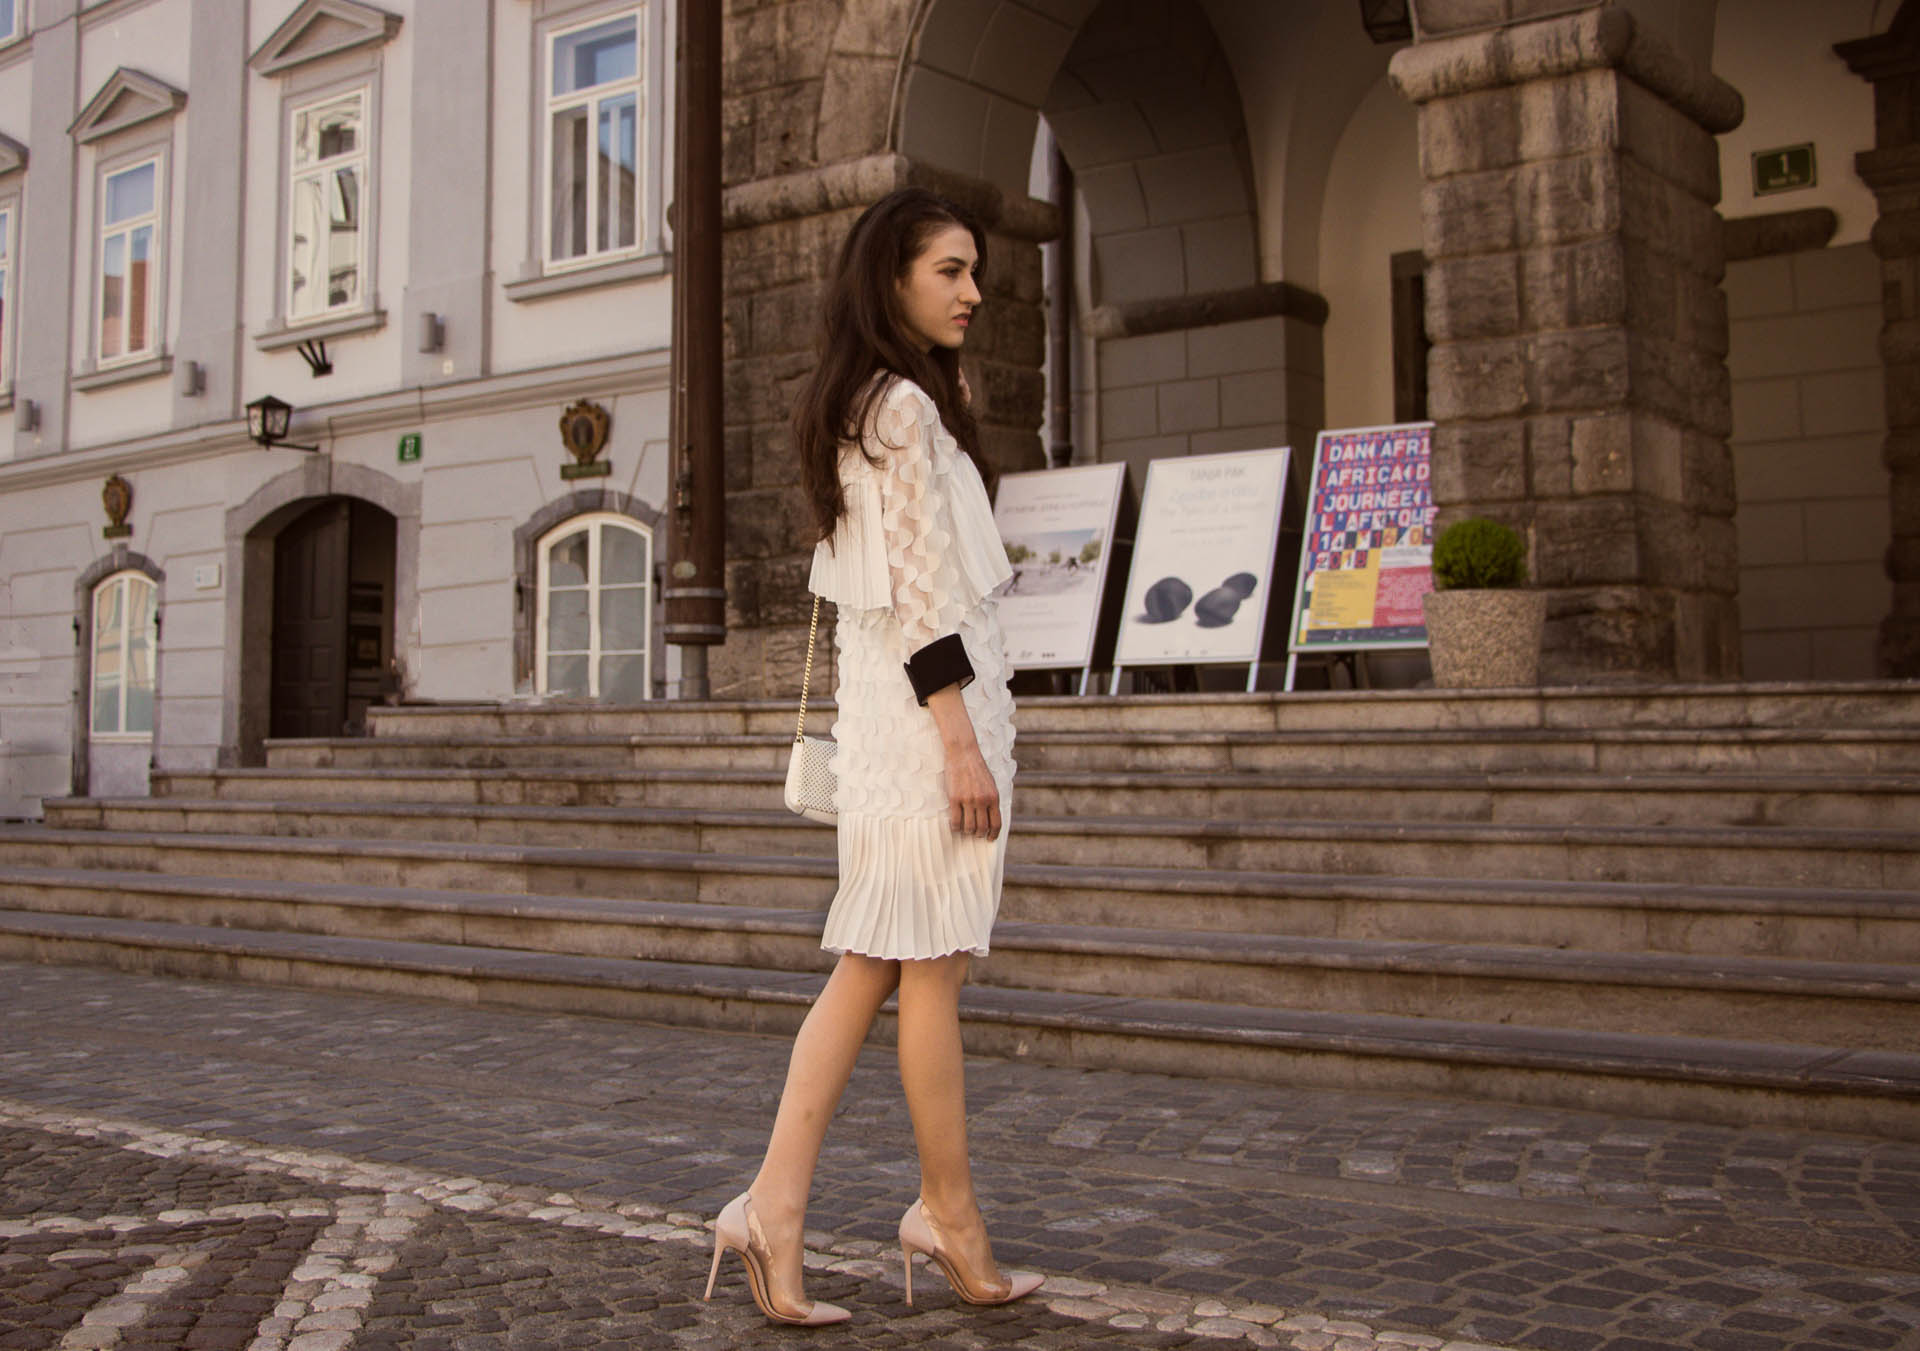 Veronika Lipar Fashion Blogger of Brunette from Wall Street dressed in Storets little white dress, Gianvito Rossi pumps for wedding at city hall in Ljubljana